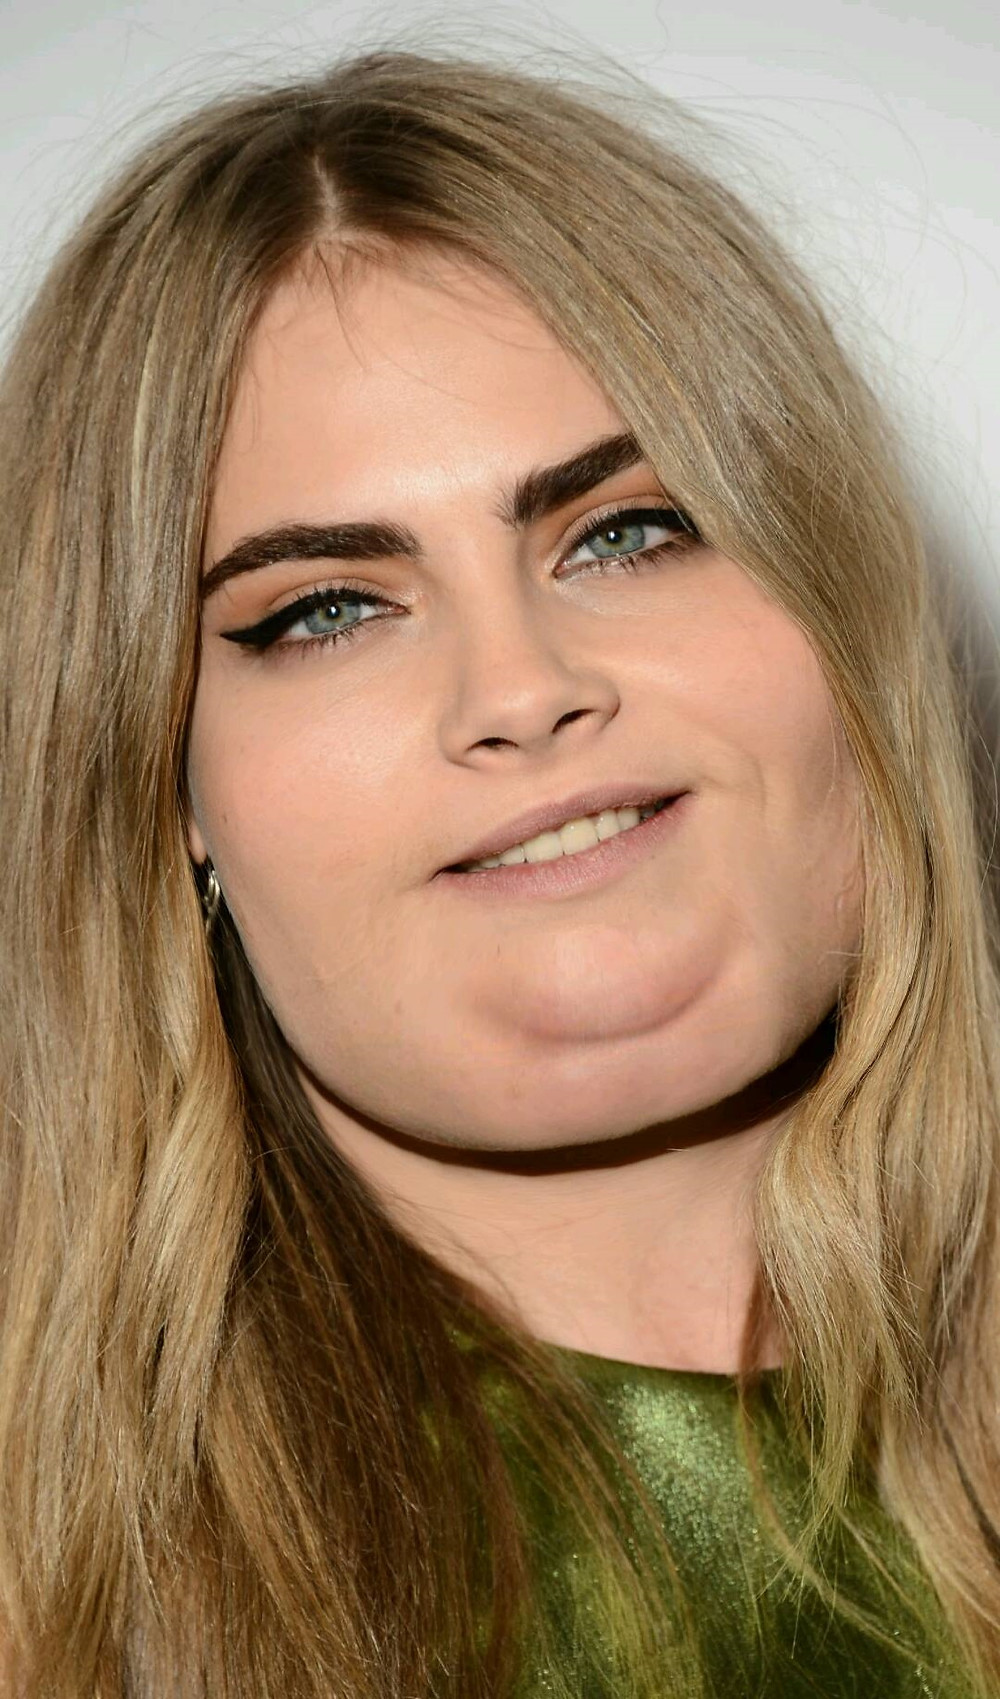 Ever Wonder What Hot Celebrities Would Look Like Fat?